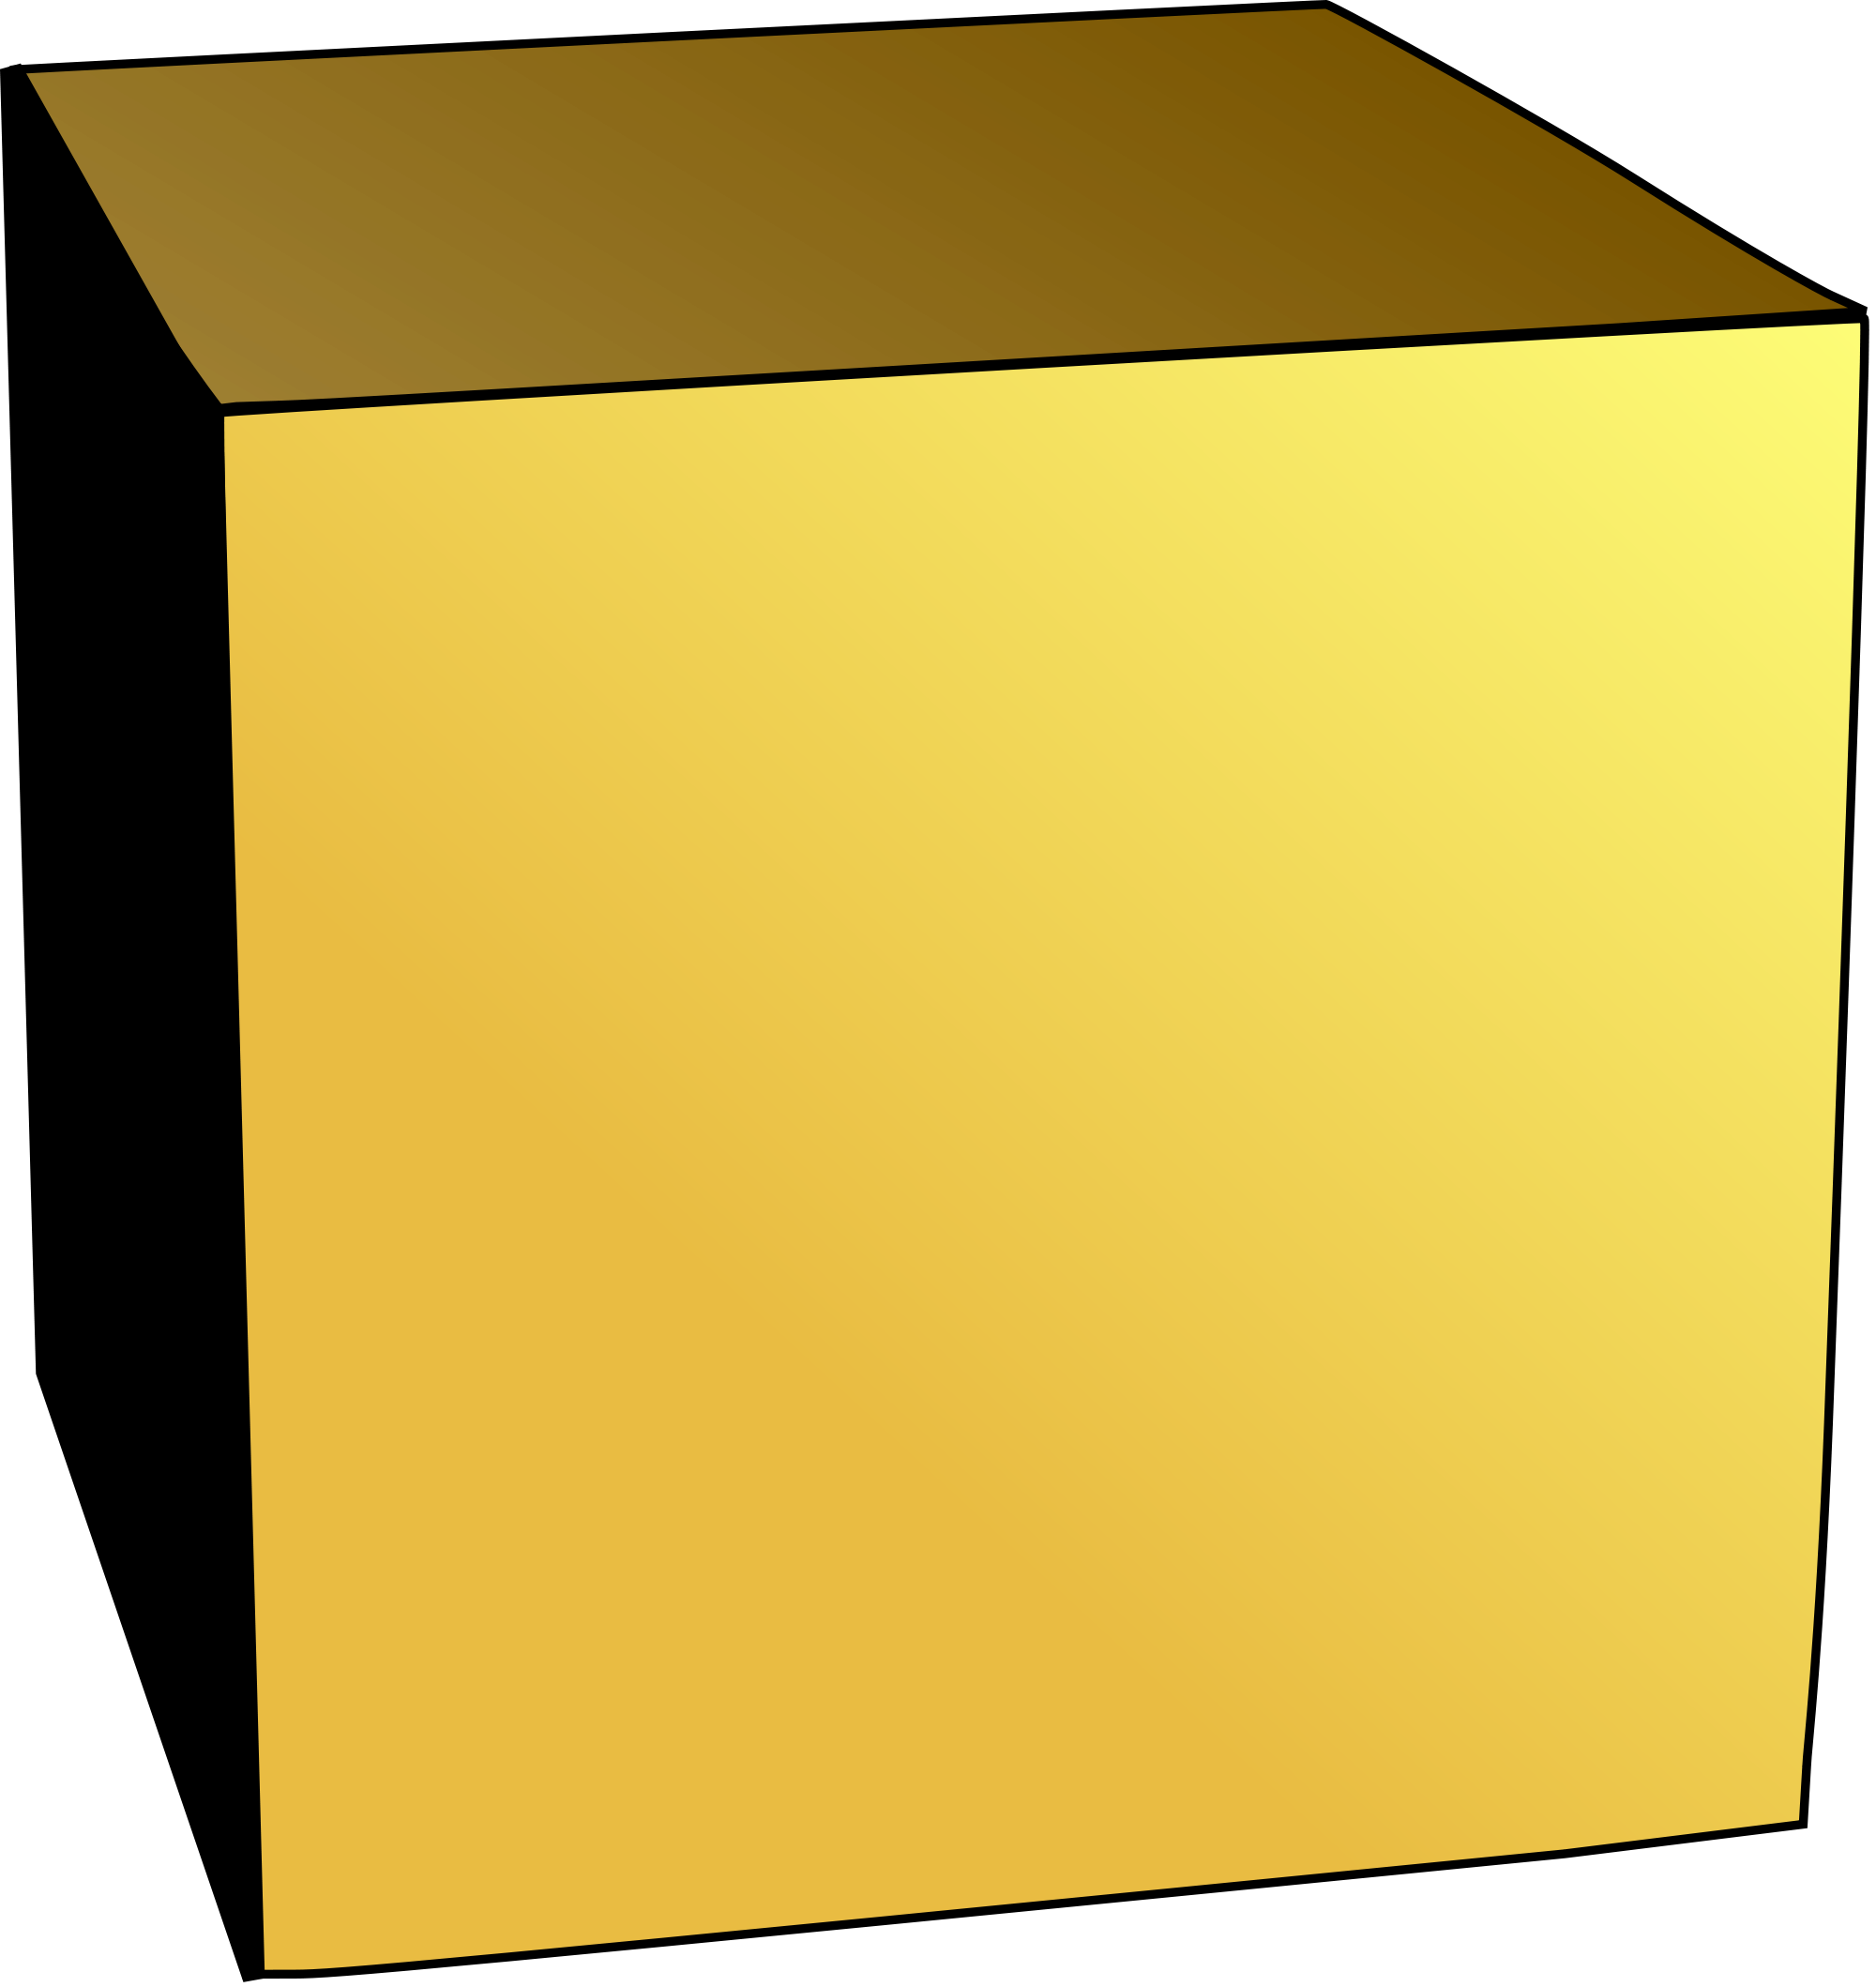 Cube svg #2, Download drawings